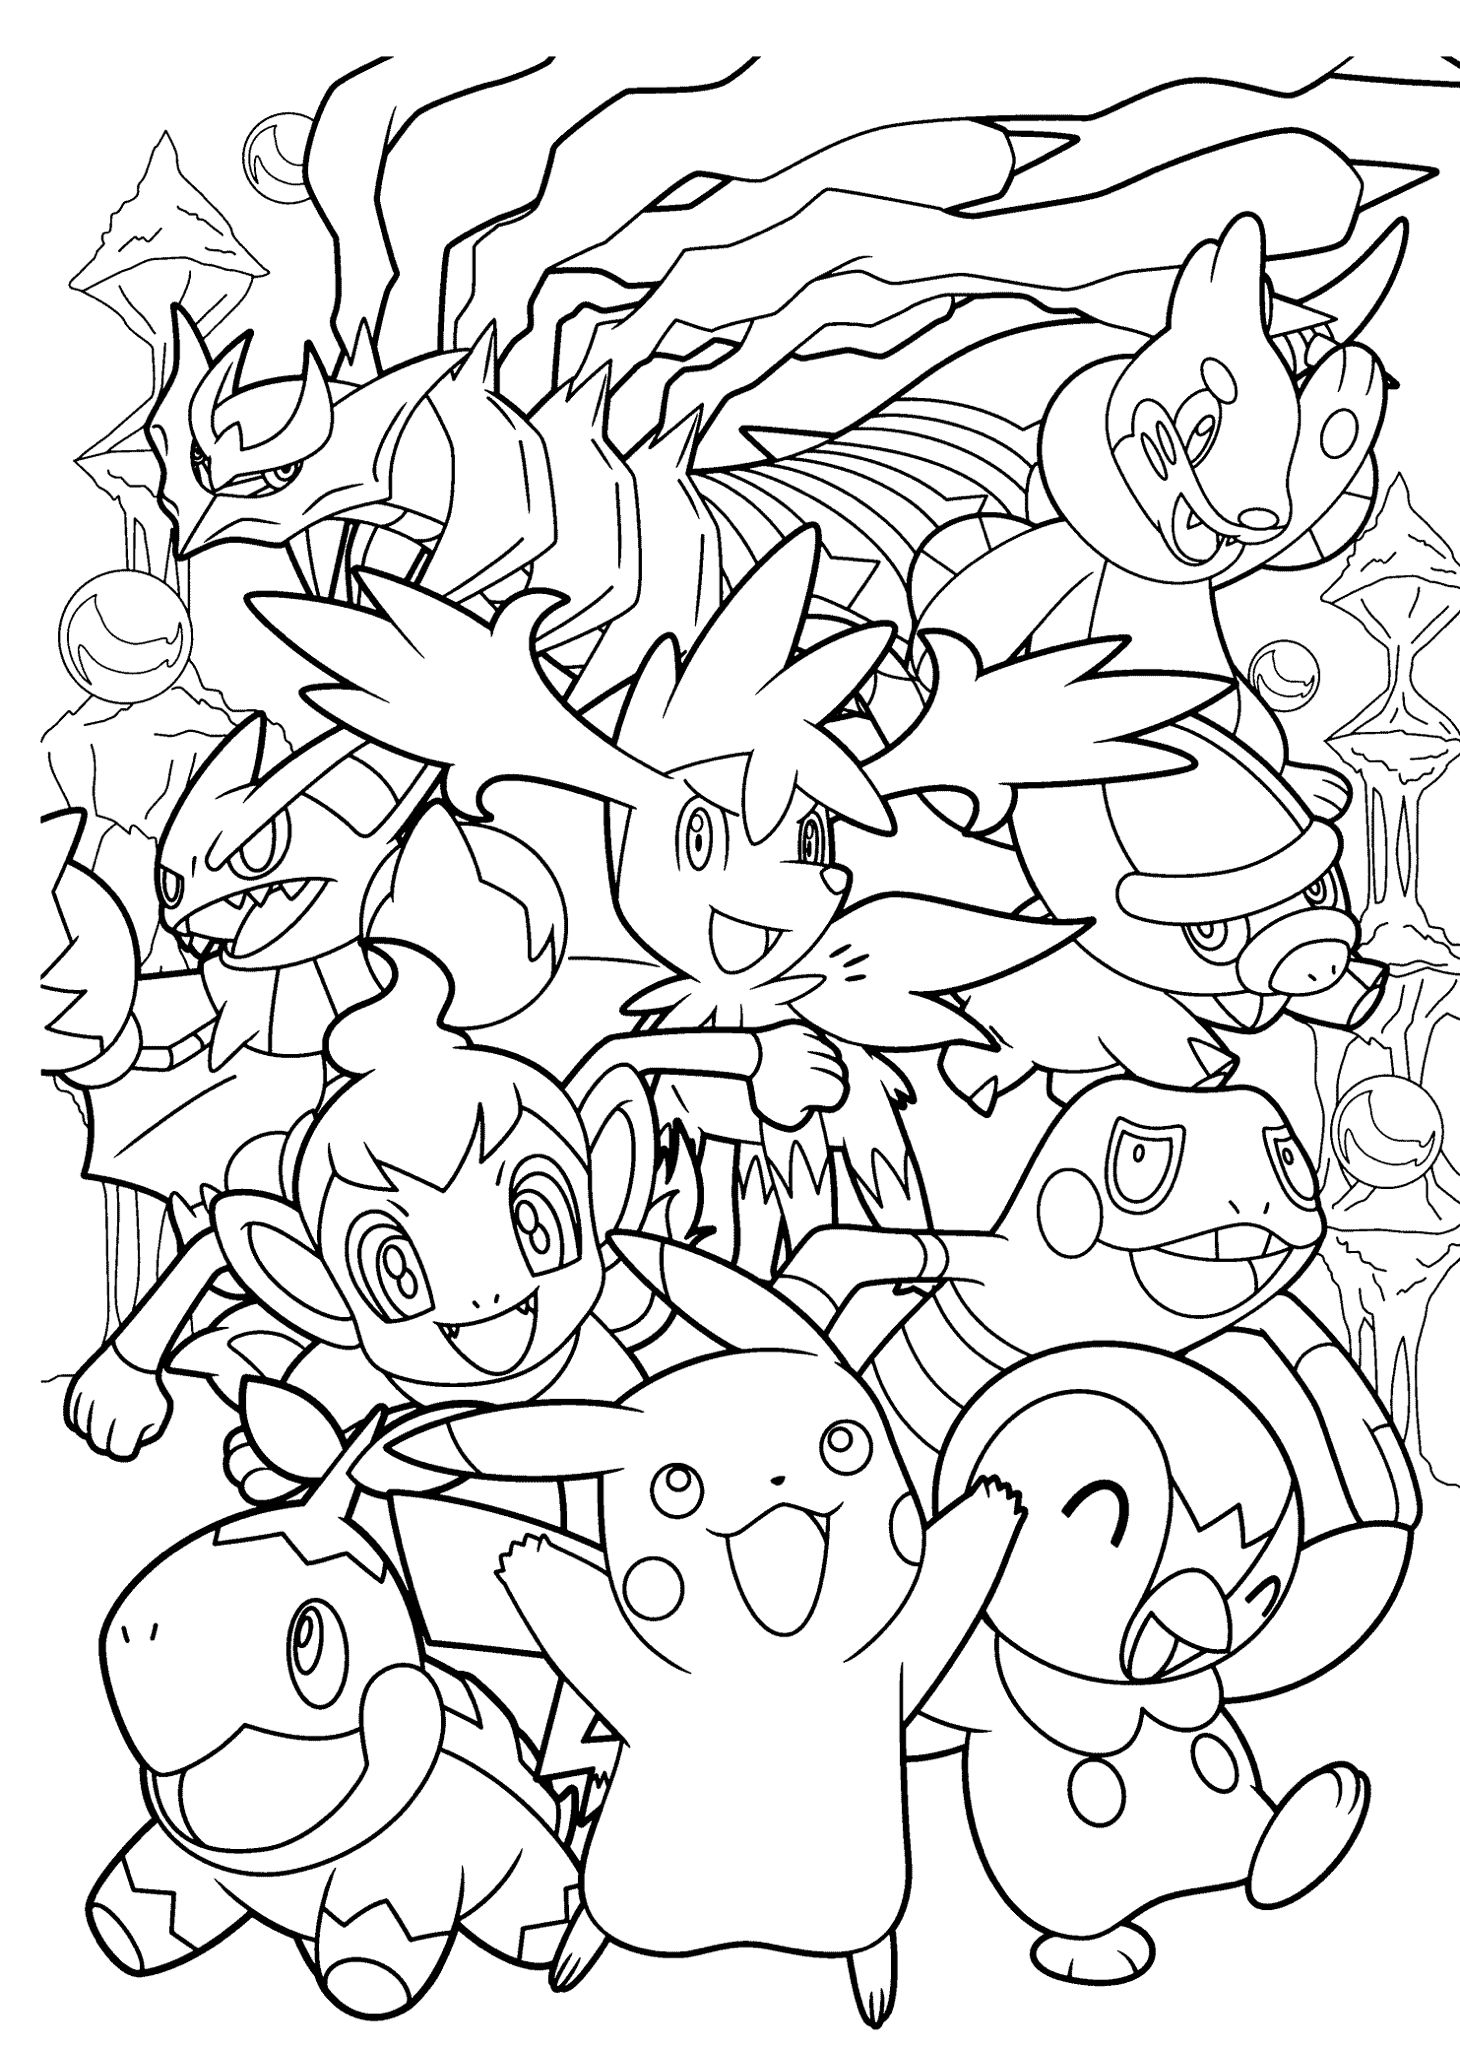 Pokemon Pokemon Coloring Sheets Pokemon Coloring Pikachu Coloring Page